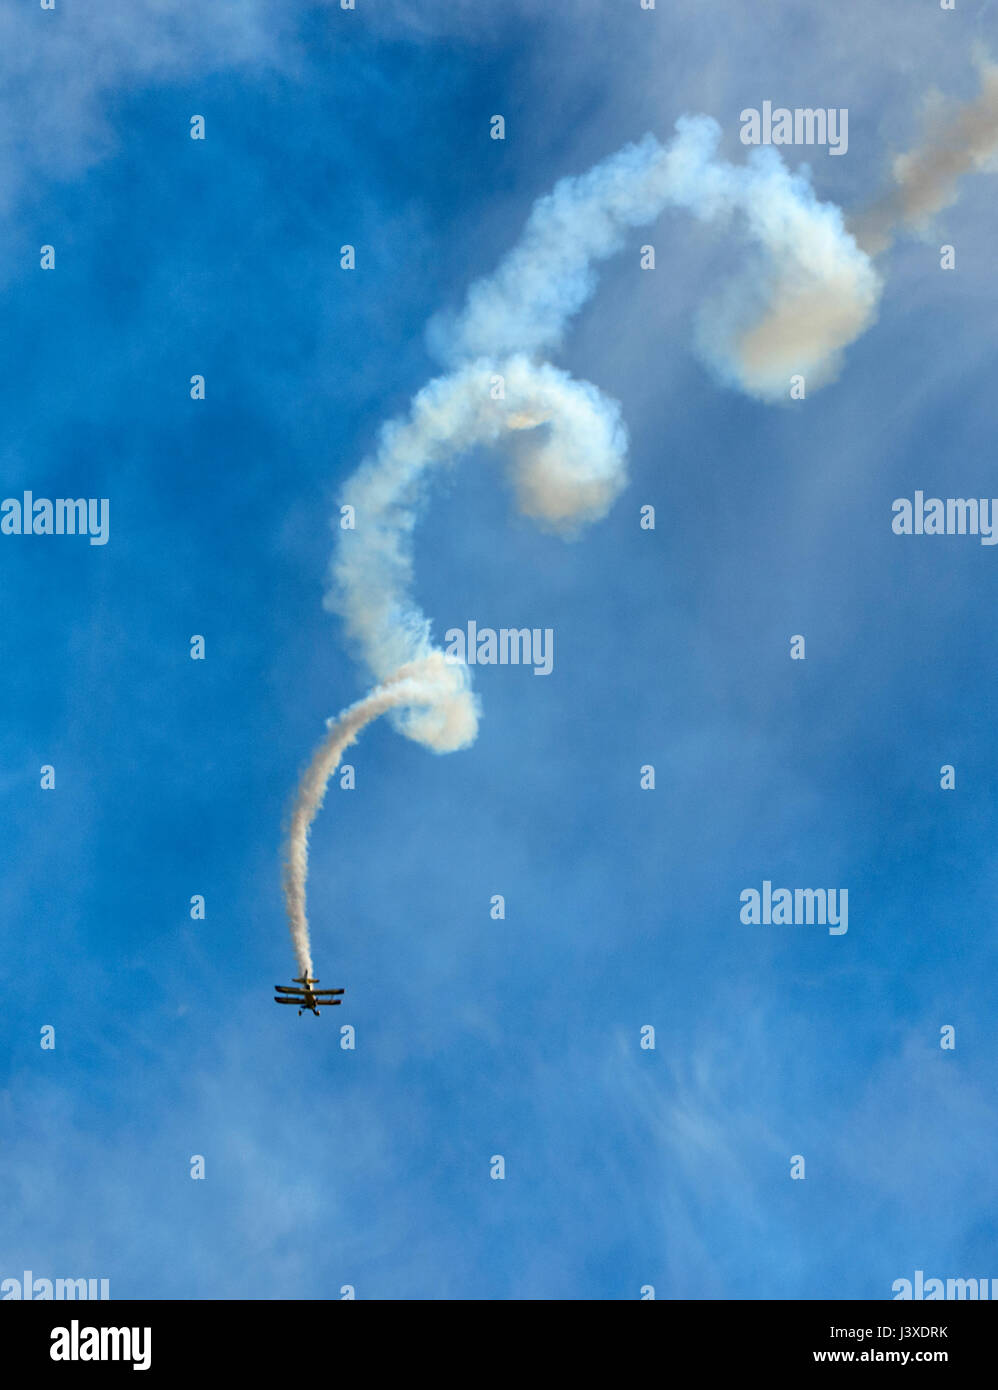 NobodyPaul Bennet's Wolf Pitts Pro performing at Wings over Illawarra 2017 Airshow, Albion Park, NSW, Australia - Stock Image